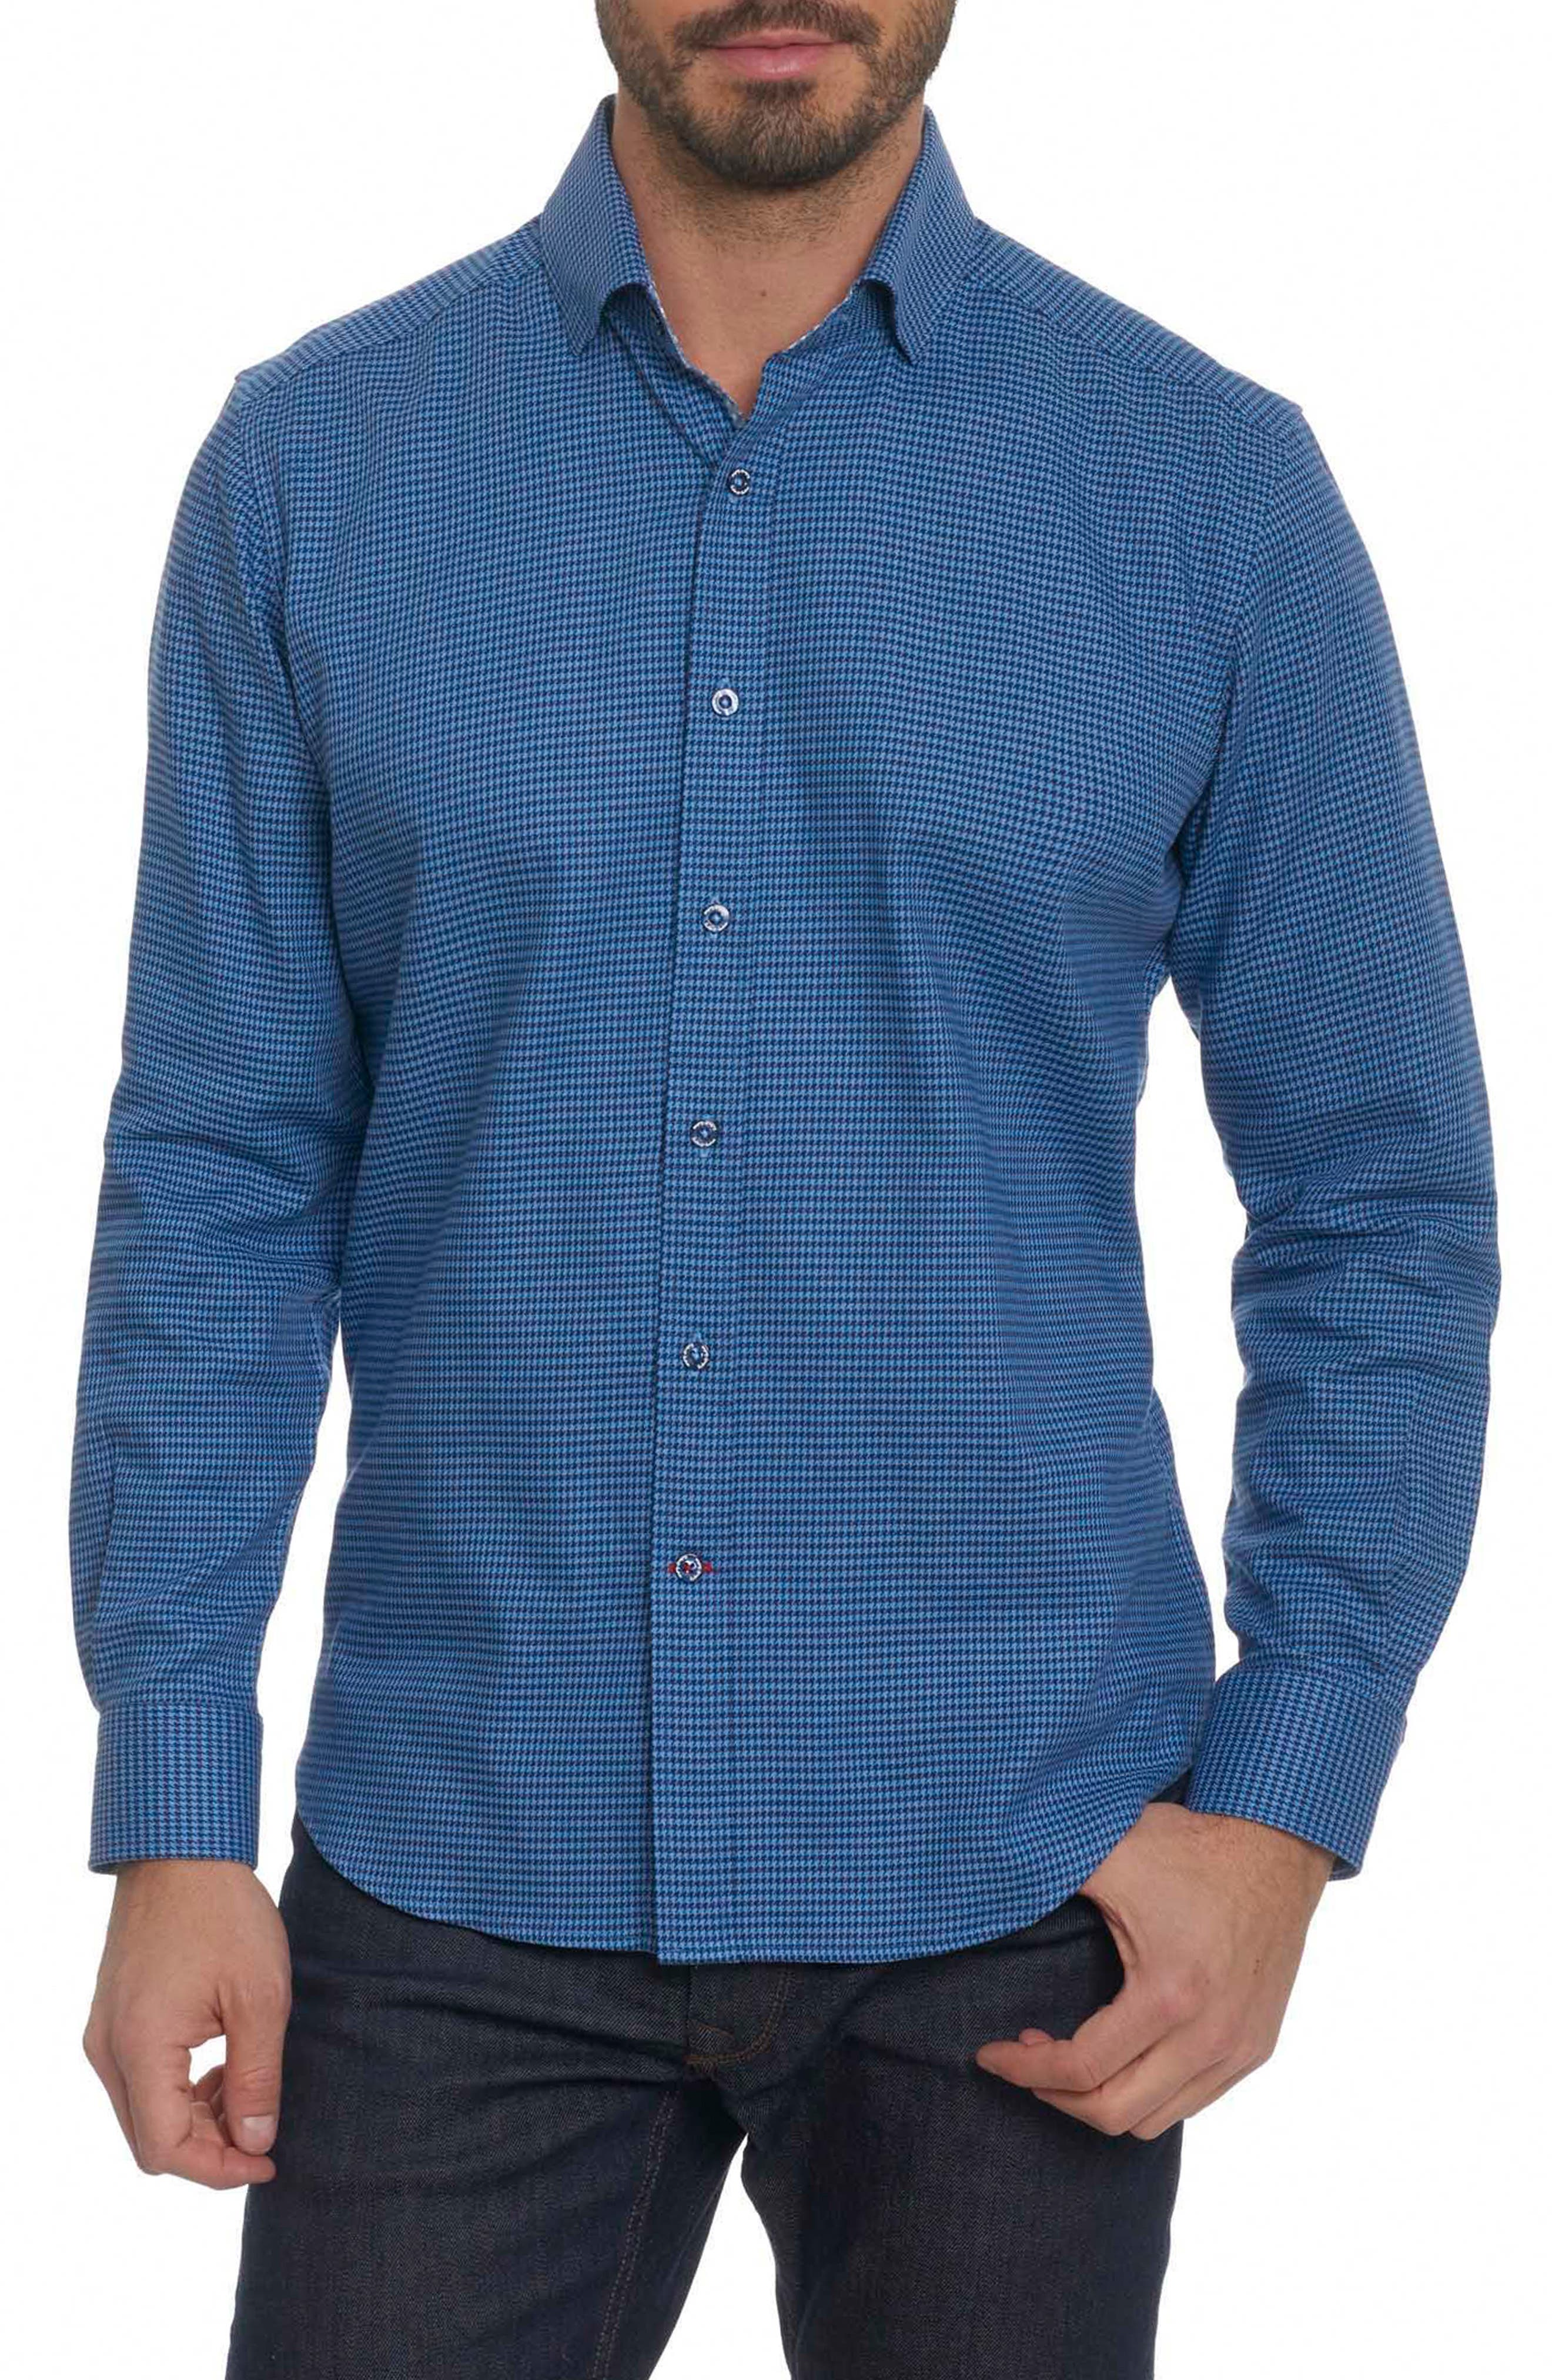 Colin Tailored Fit Sport Shirt,                         Main,                         color,